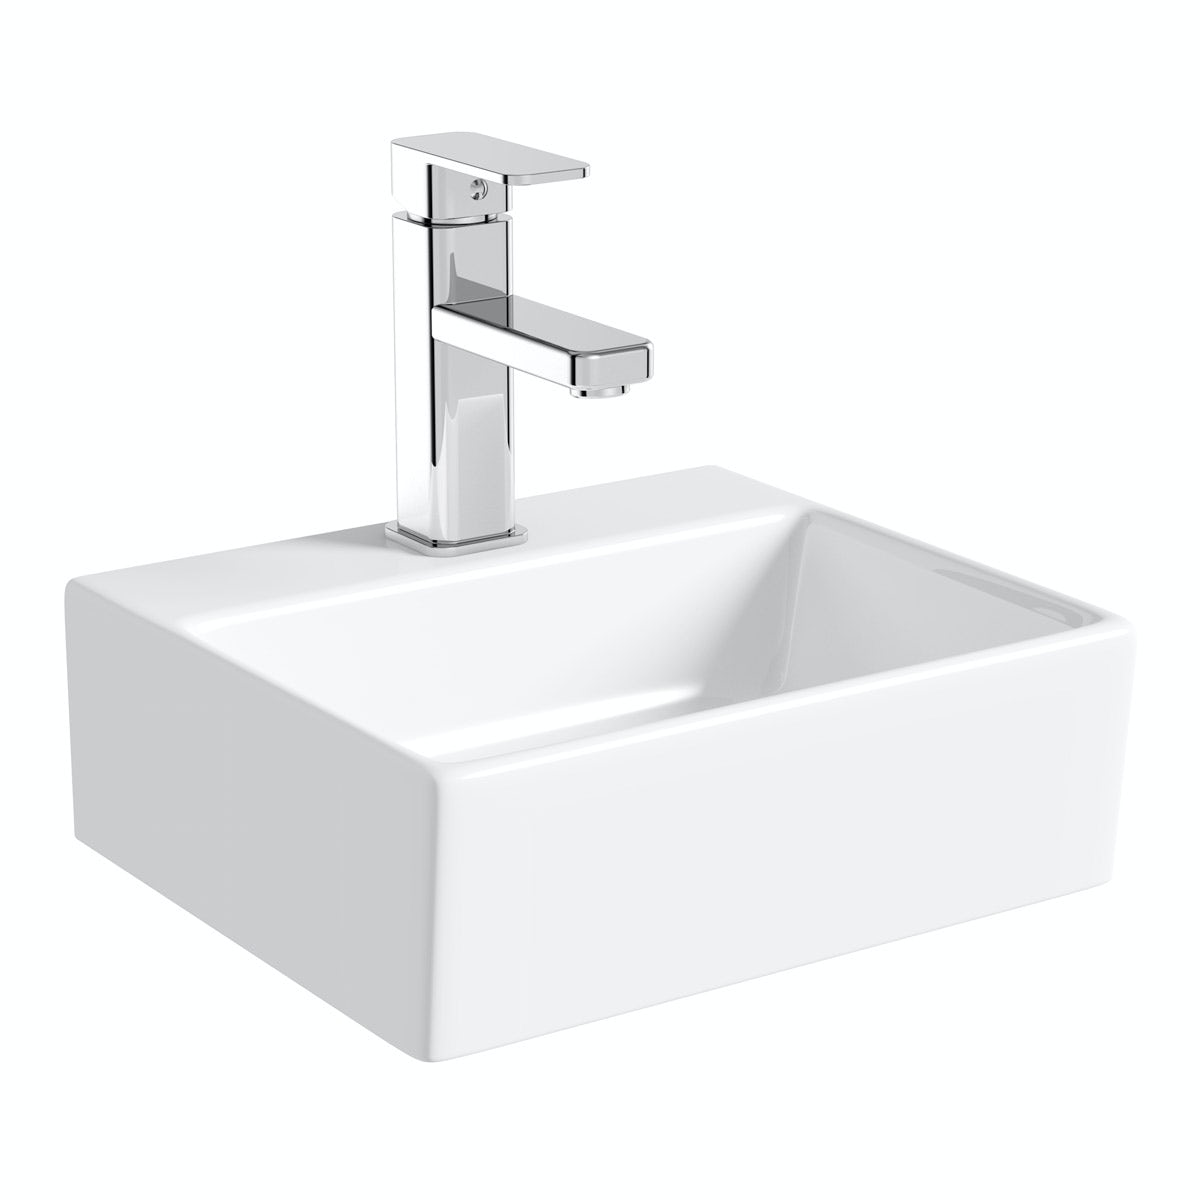 Orchard Derwent square 1 tap hole countertop basin 330mm